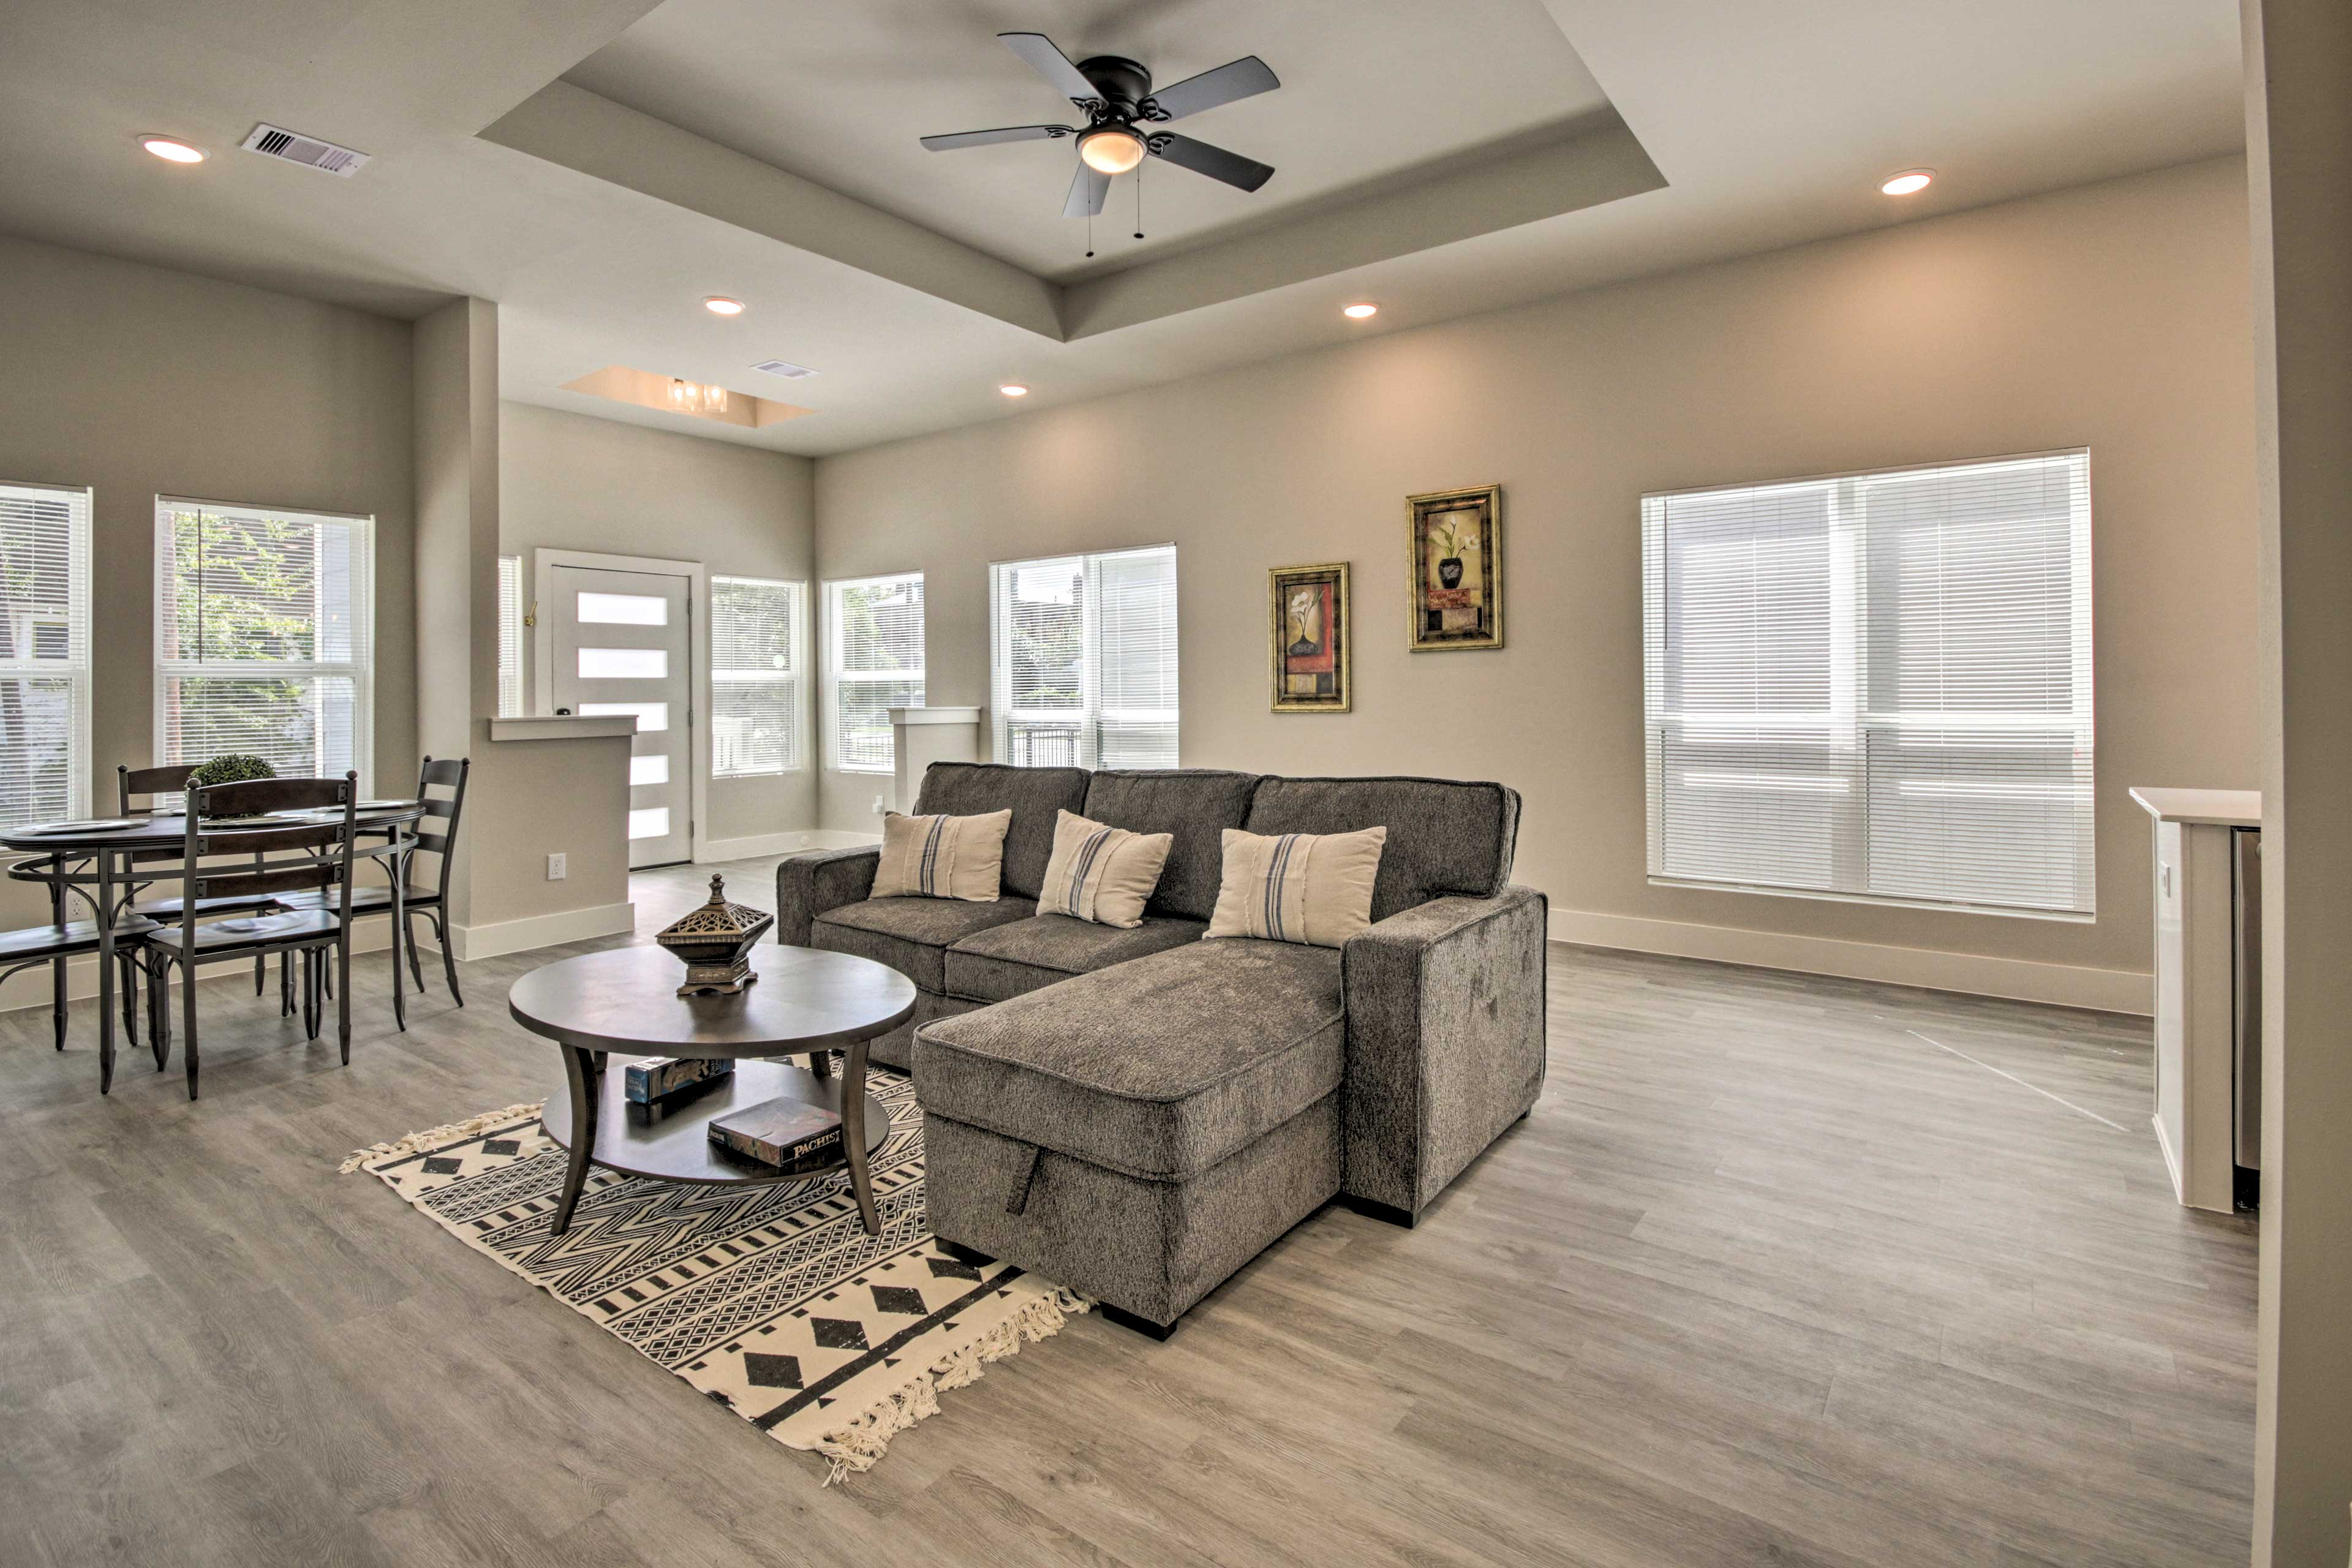 Houston Vacation Rental Home | 3BR | 2BA | 1,510 Sq Ft